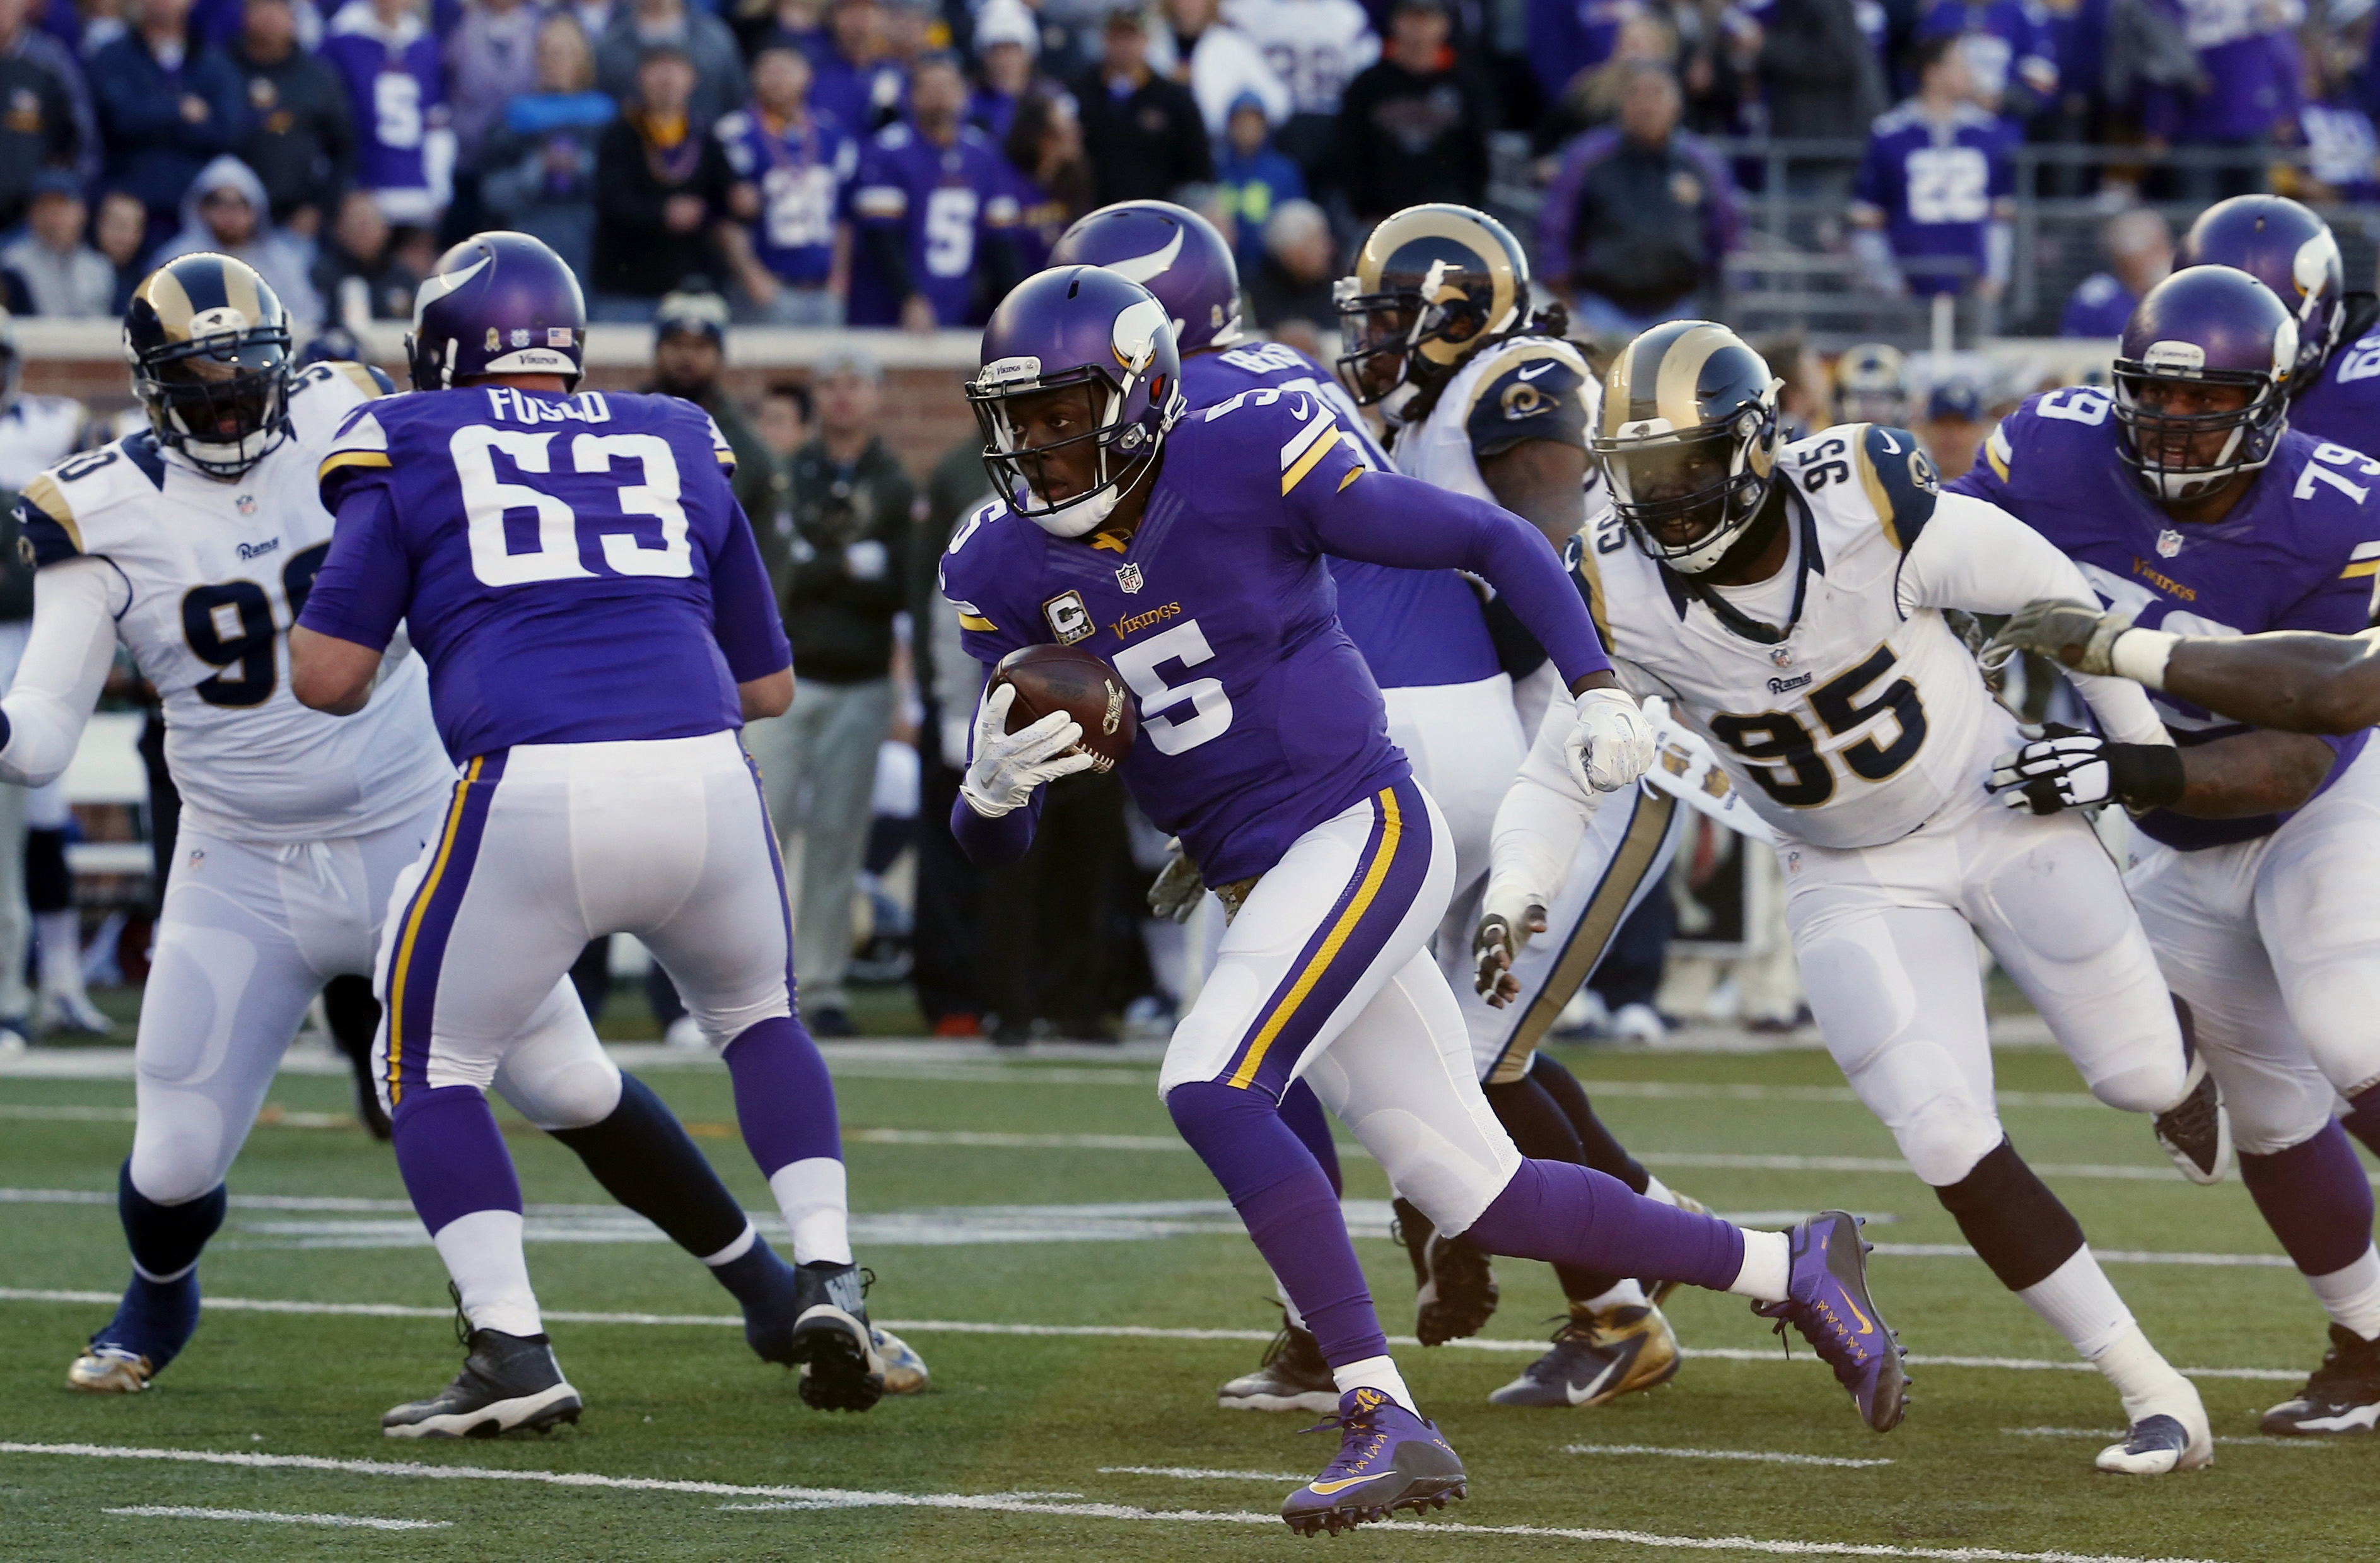 Minnesota Vikings quarterback Teddy Bridgewater (5) breaks away from St. Louis Rams defensive end William Hayes (95) for a touchdown run during the second half of an NFL football game Sunday, Nov. 8, 2015, in Minneapolis. (AP Photo/Ann Heisenfelt)